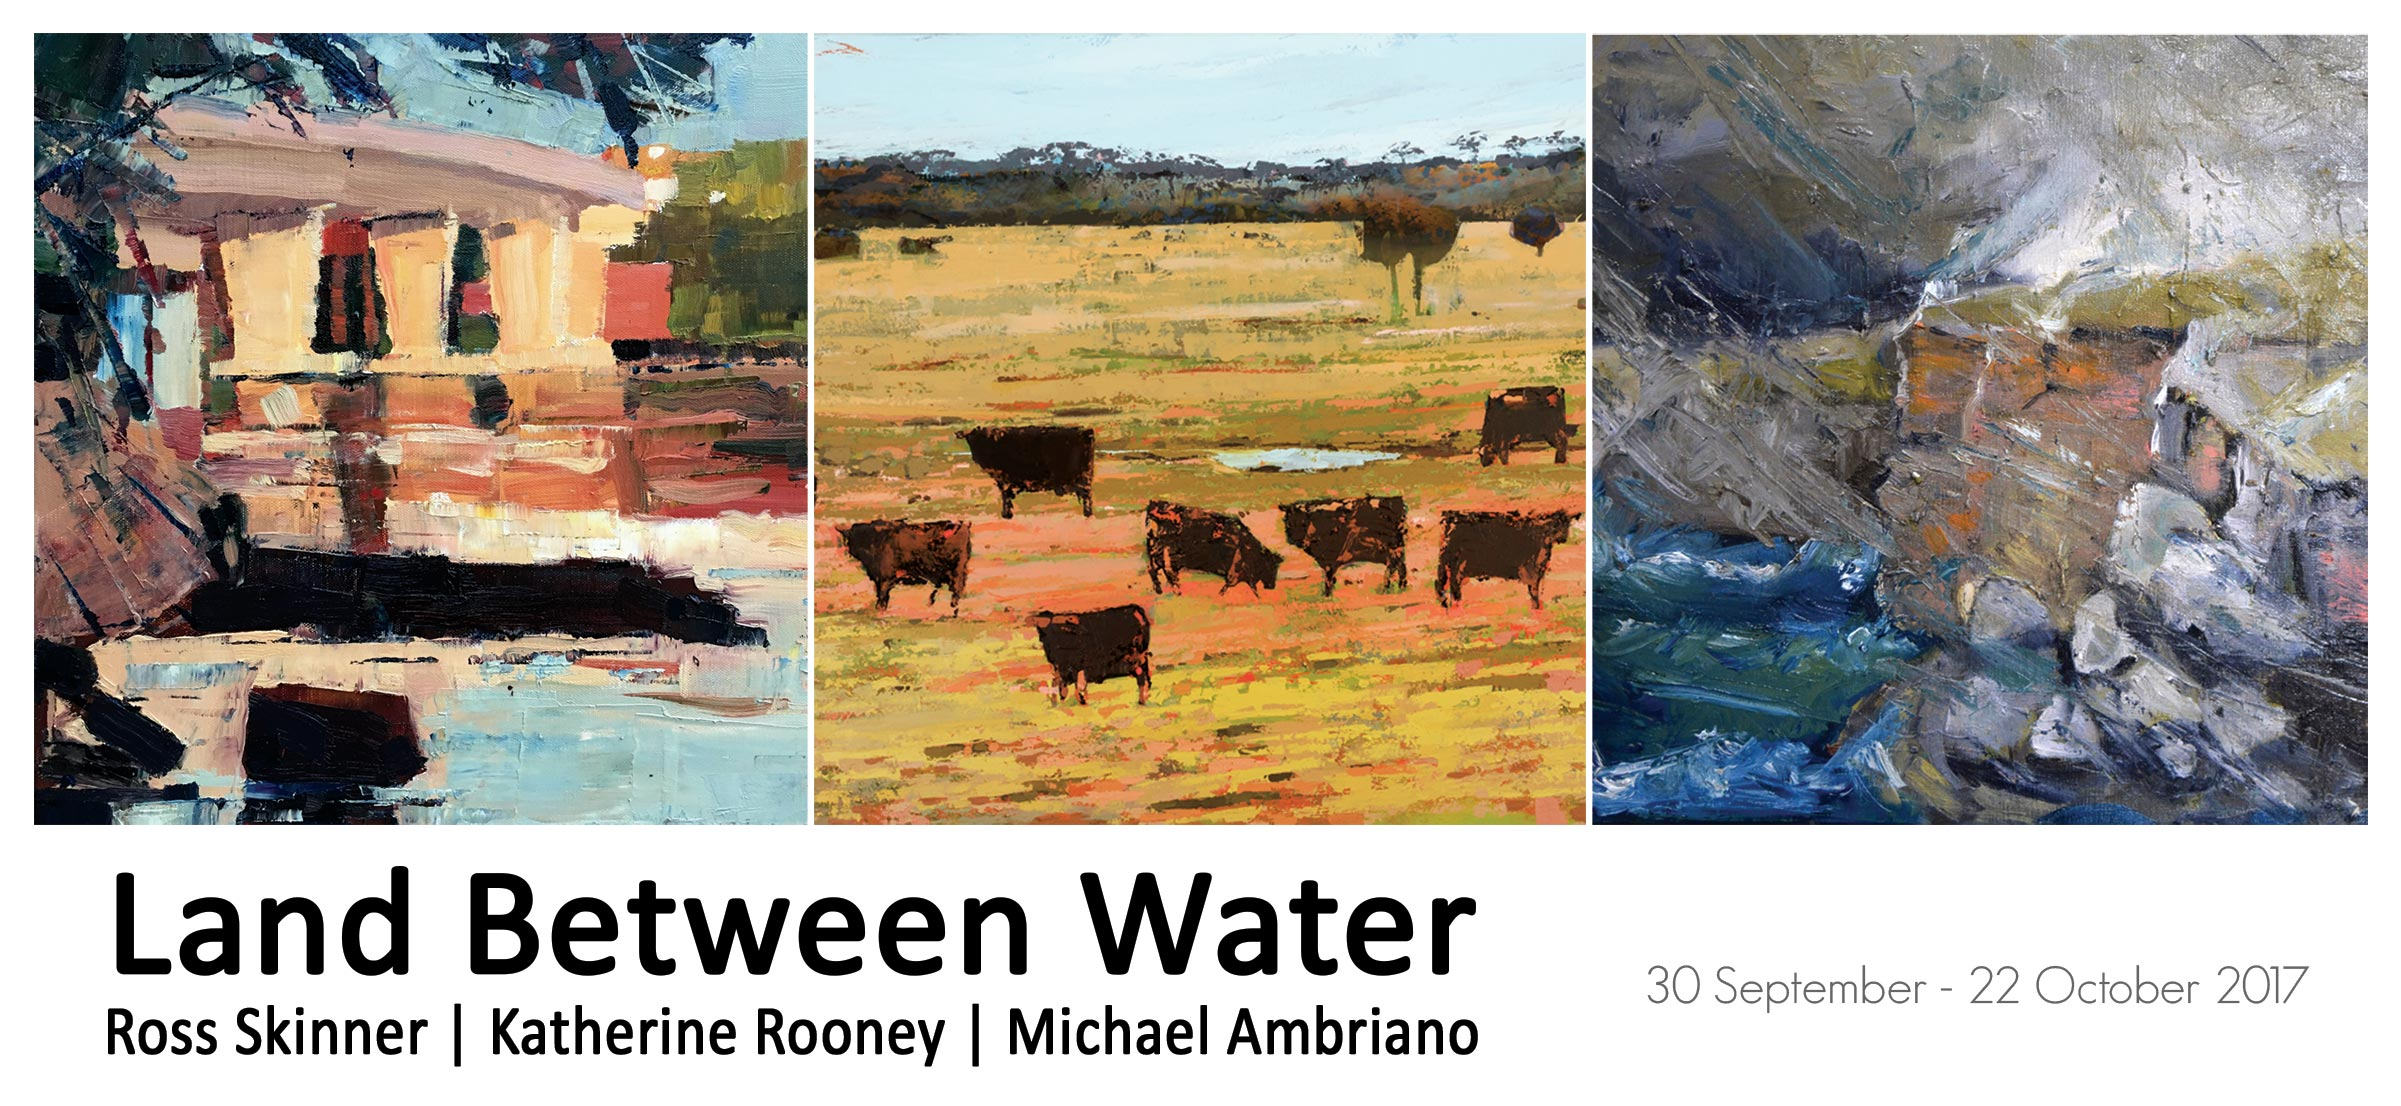 View Exhibition at Artsite Gallery, Sydney: 30 September - 22 October 2017. Land Between Water: Ross Skinner, Katherine Rooney, Michael Ambriano